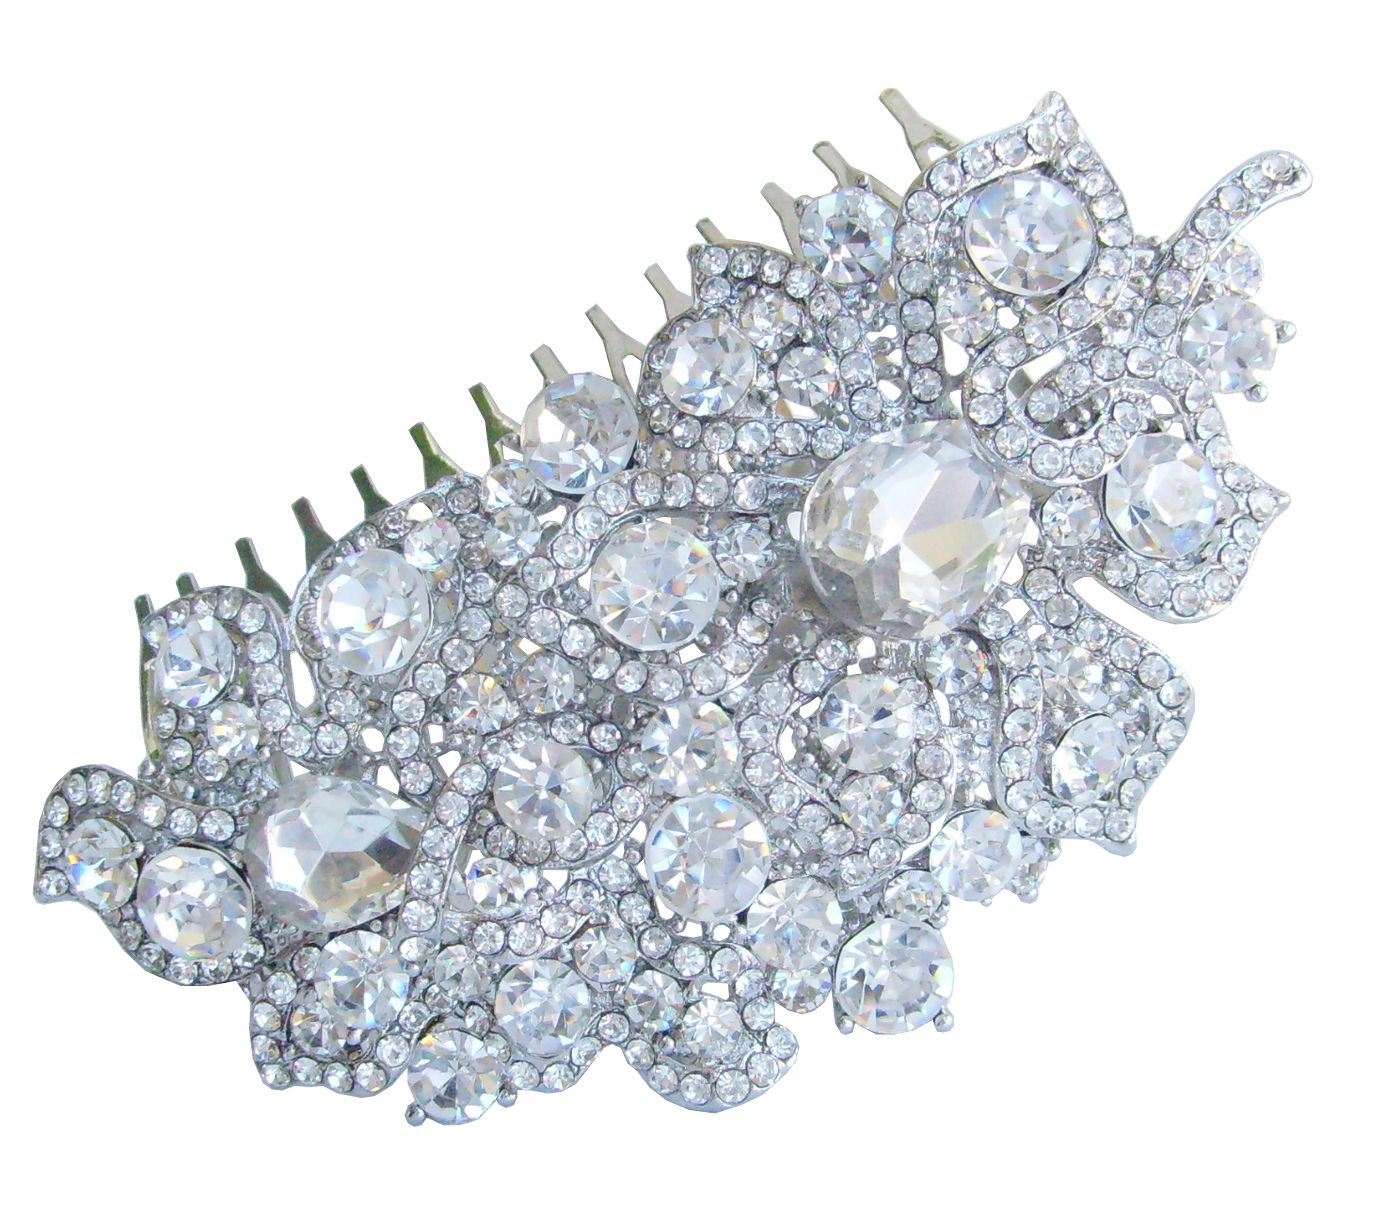 Sindary Wedding Headpiece 4.13 Inch Silver-tone Clear Rhinestone Crystal Flower Hair Comb